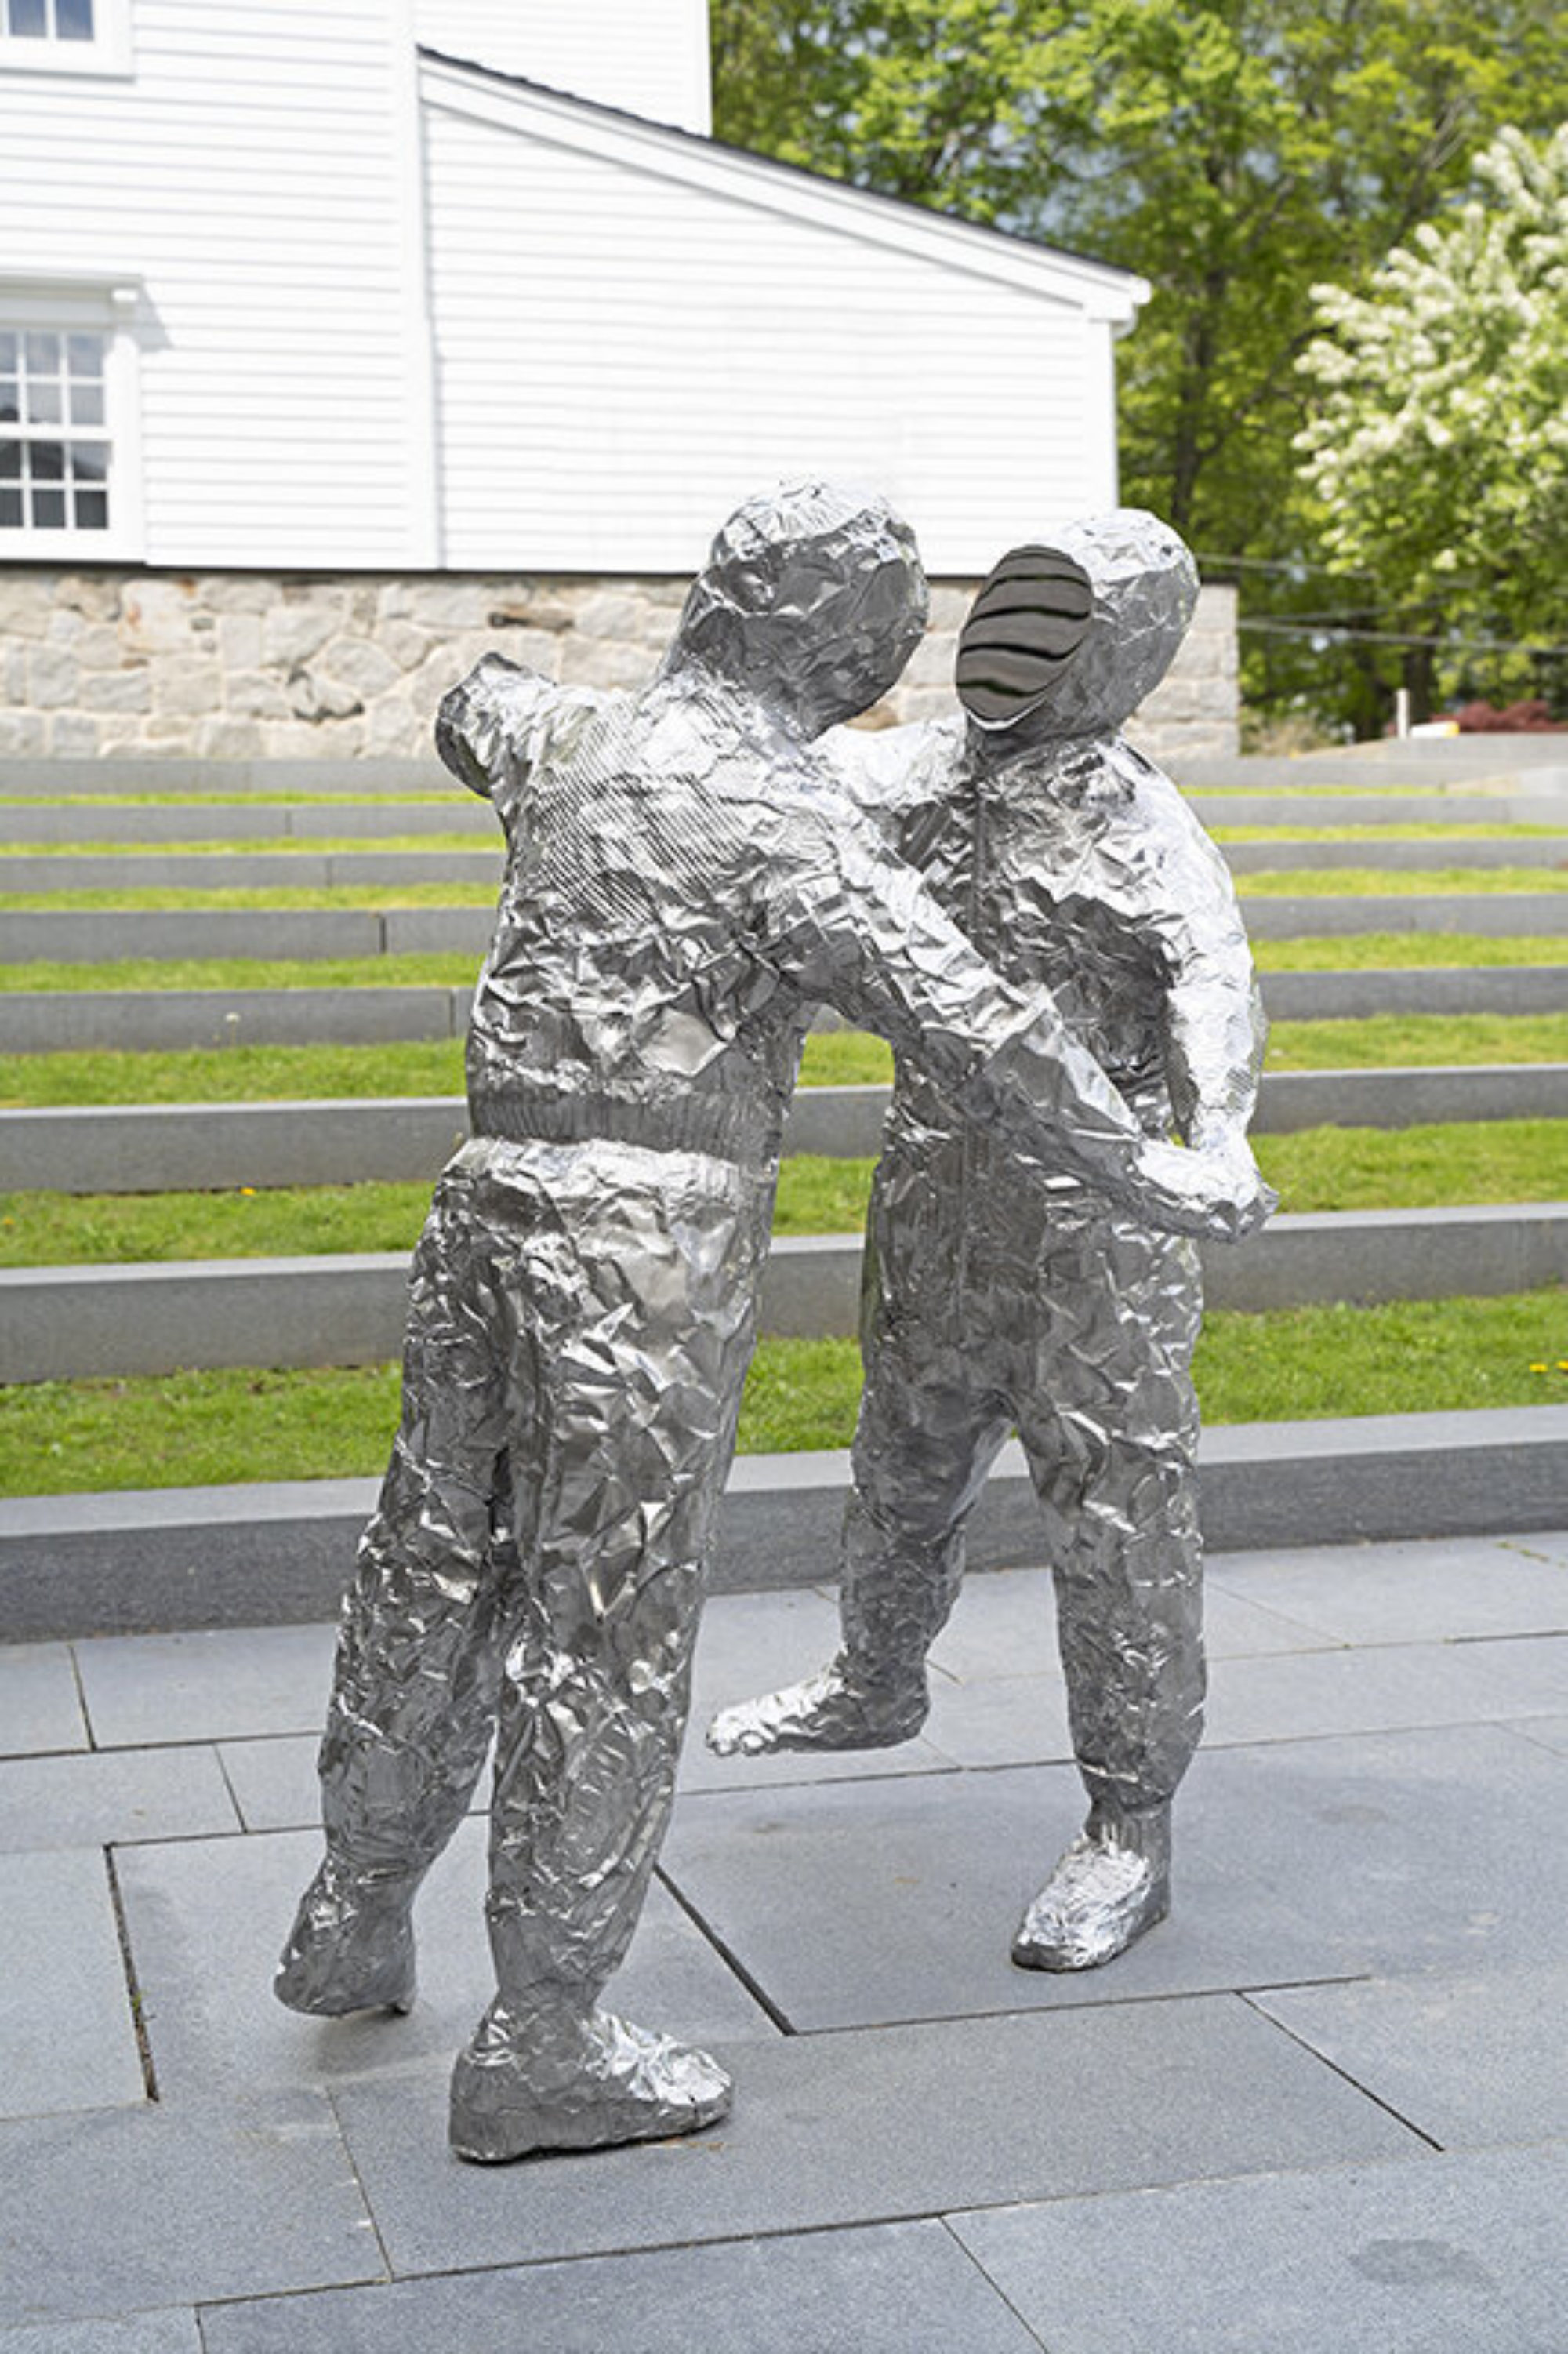 Two figures made out of crumpled baking pans cast in polished stainless steel